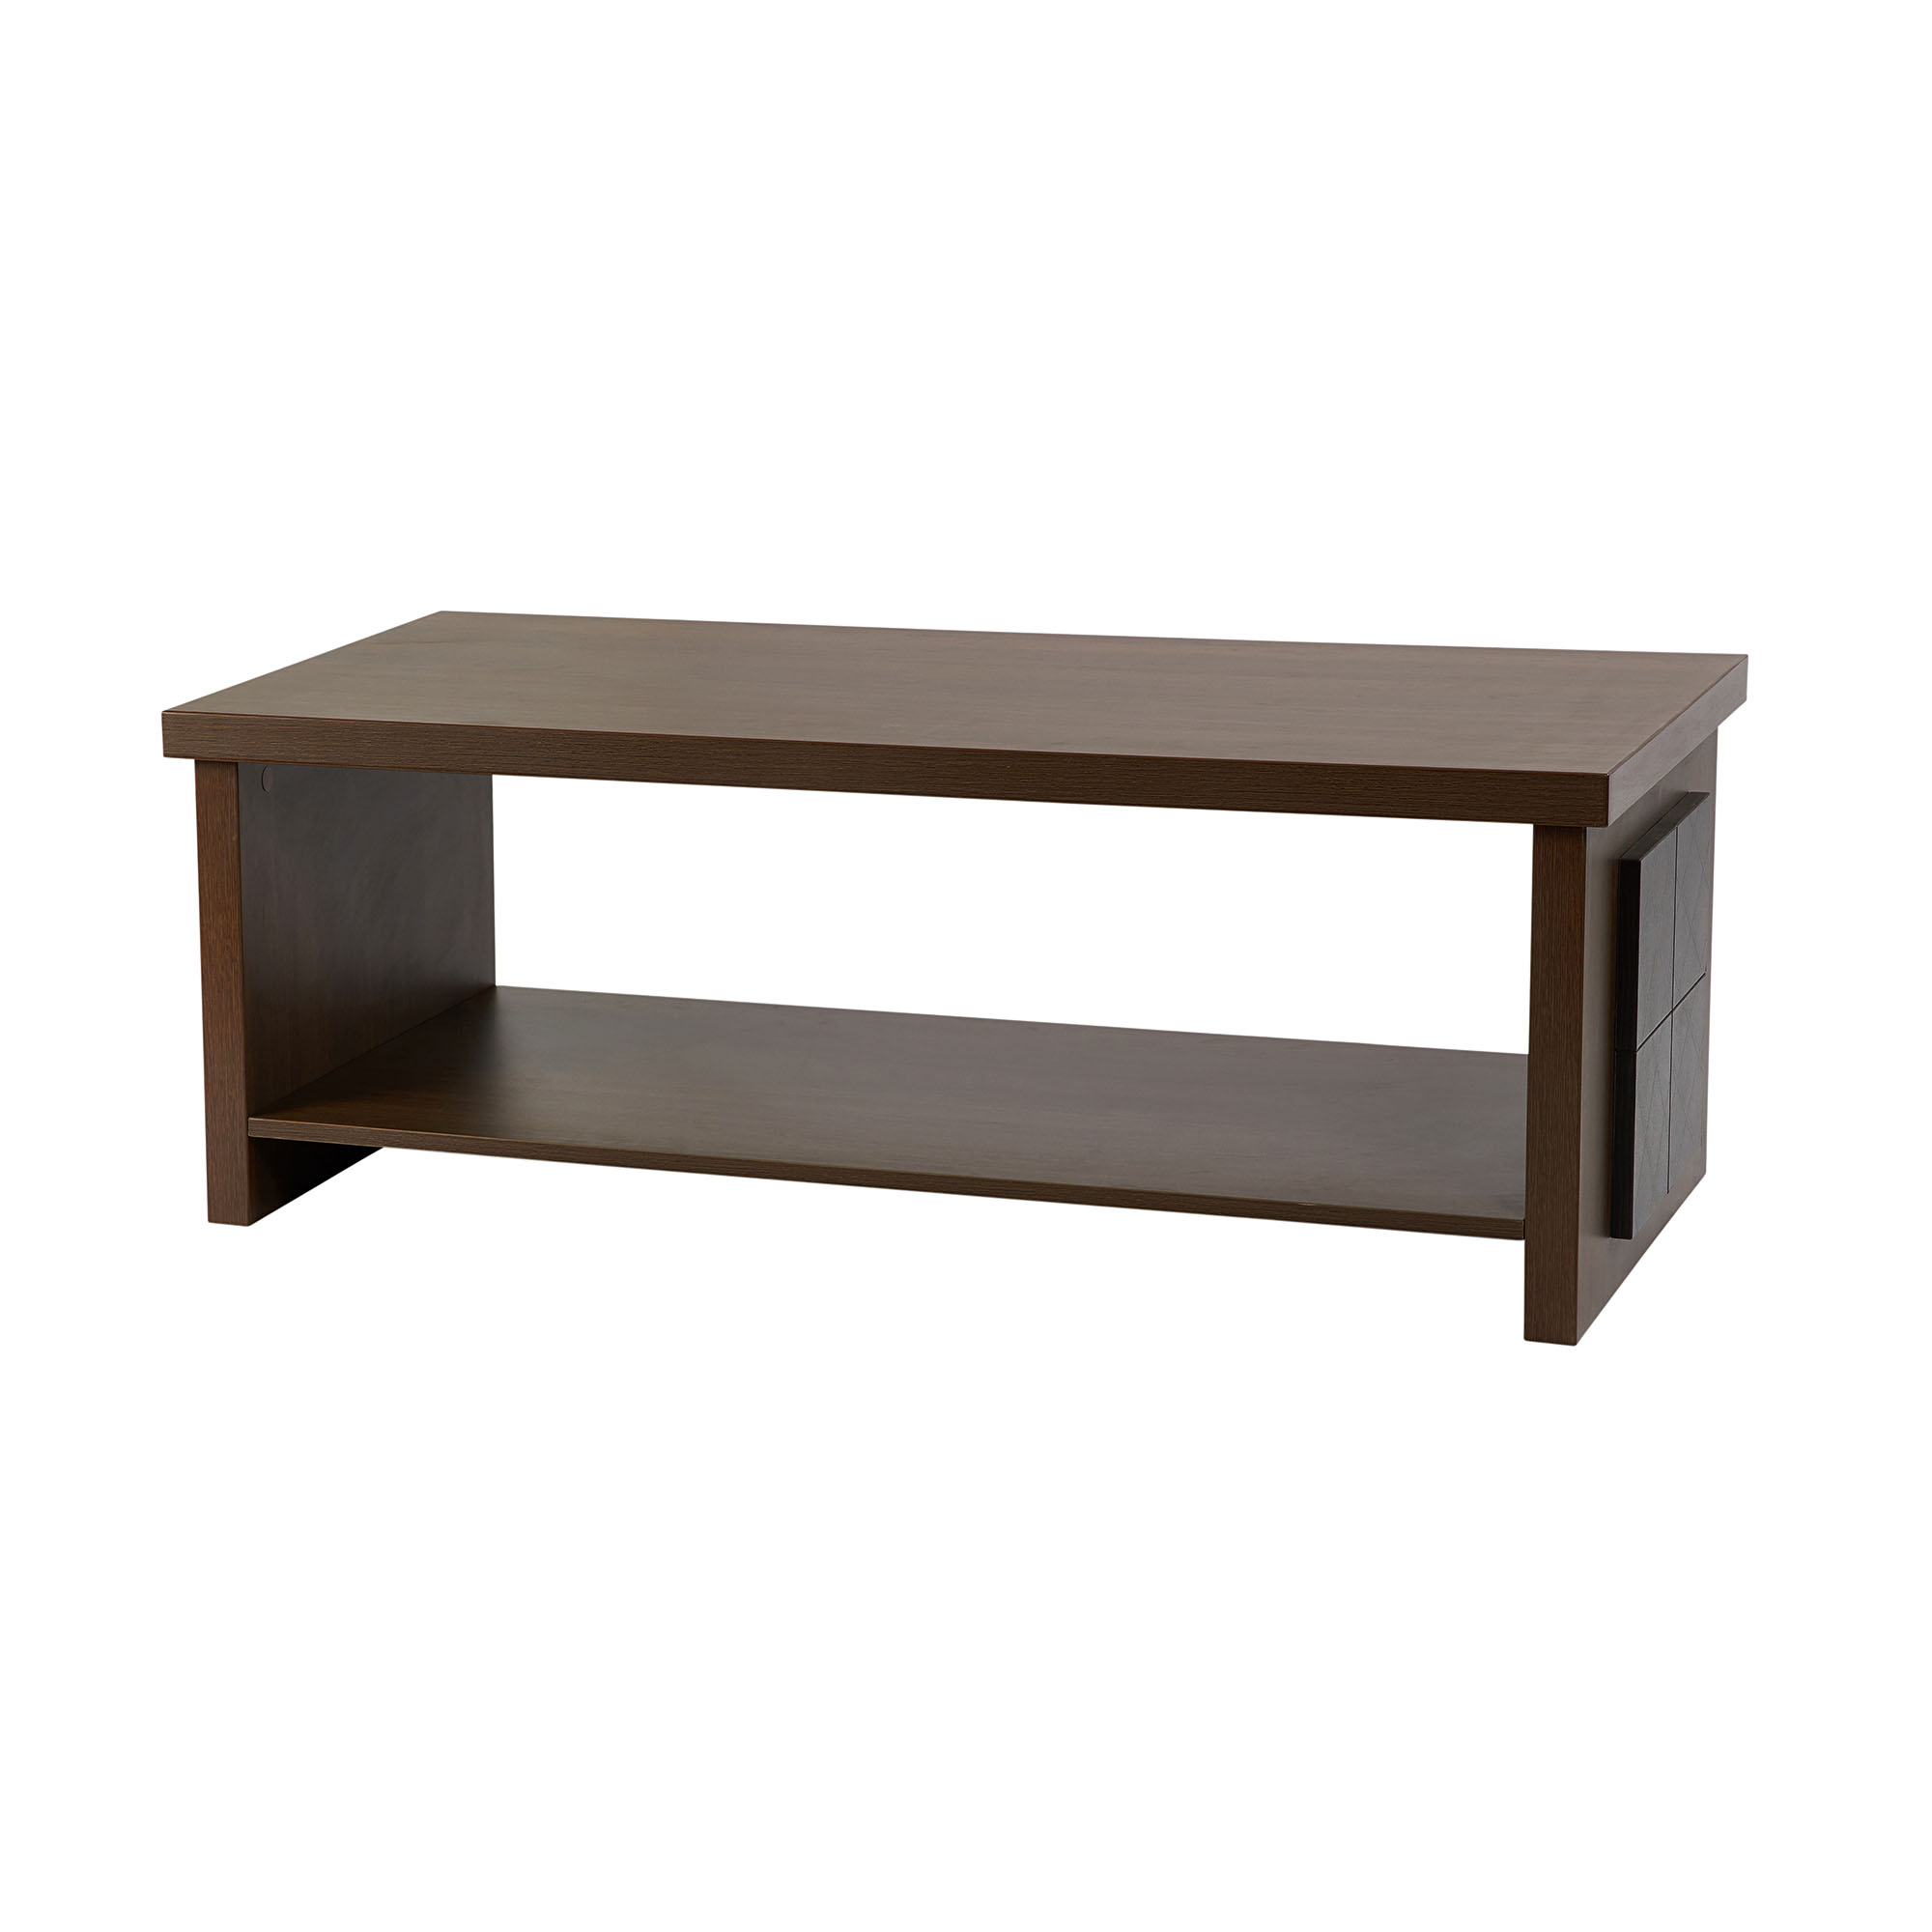 Aida Coffee Table Rose Office Furniture intended for dimensions 2000 X 2000